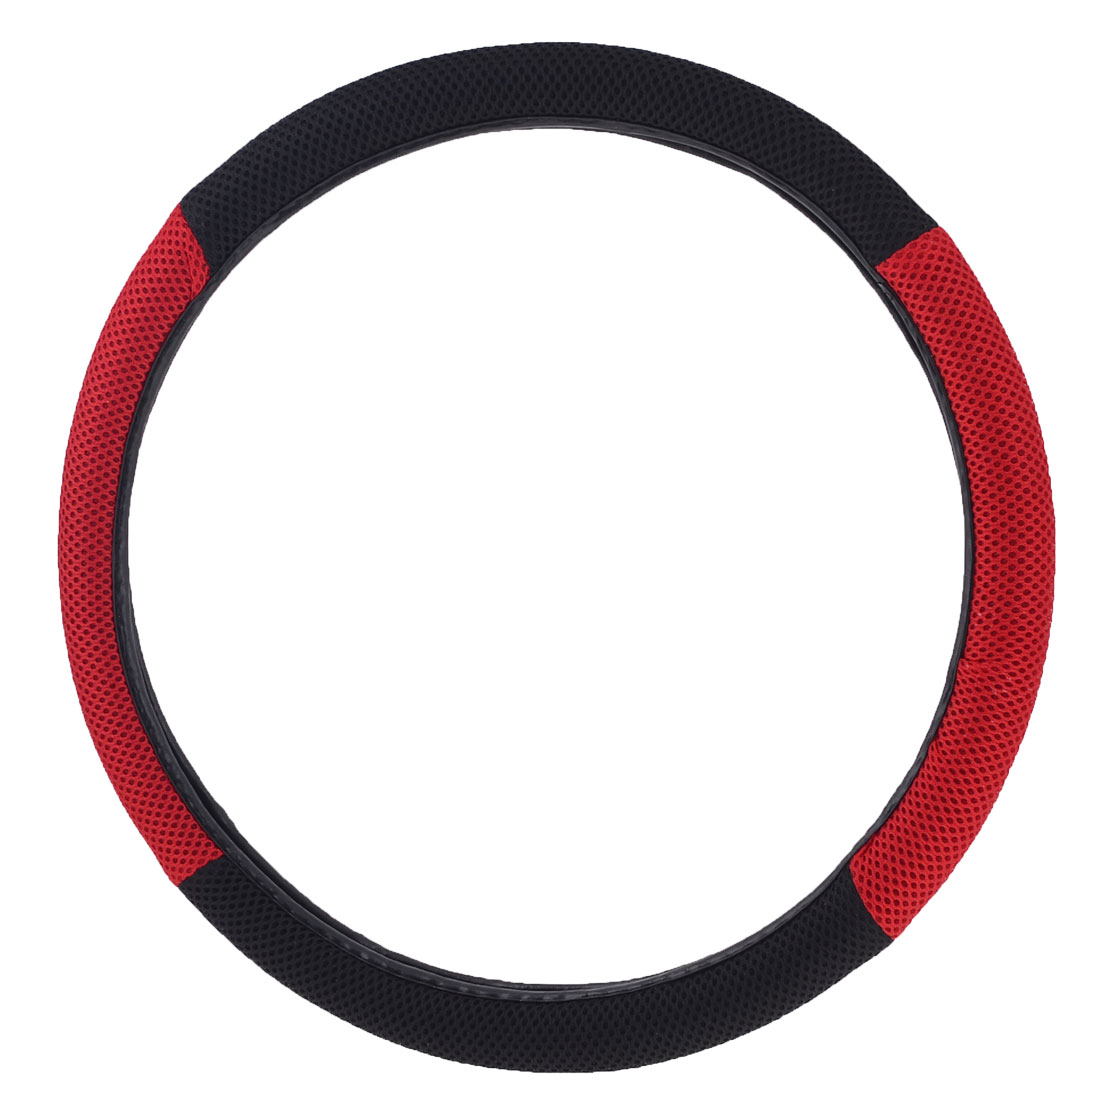 Black Red Mesh Rubber Elastomer Steering Wheel Cover for Car Truck